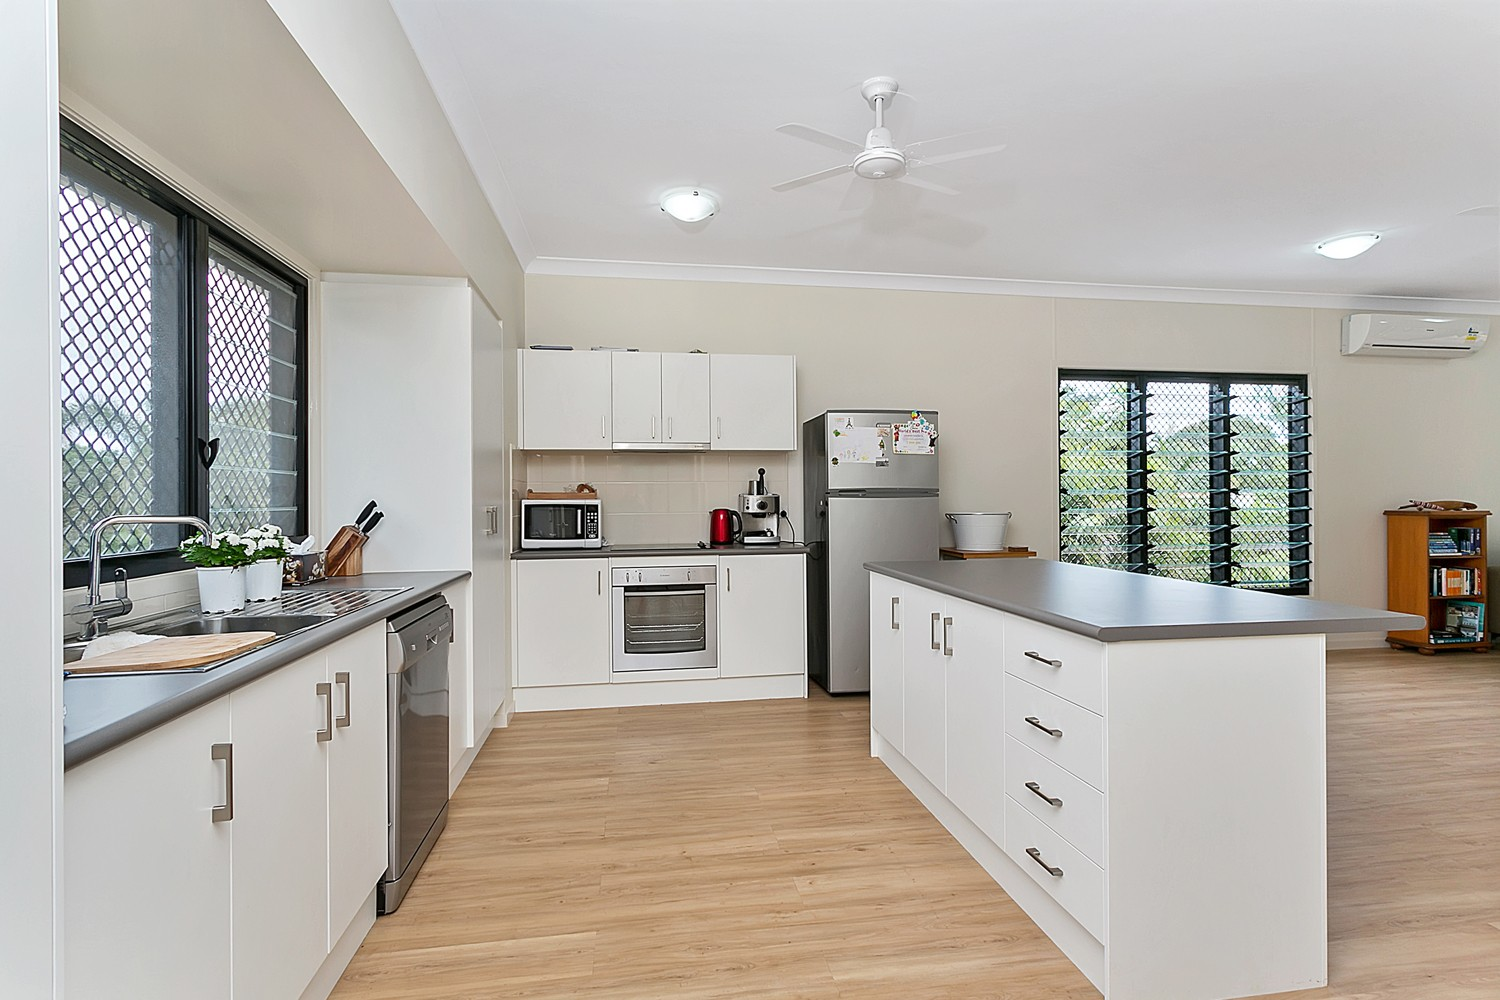 Rio Tinto leased Weipa home